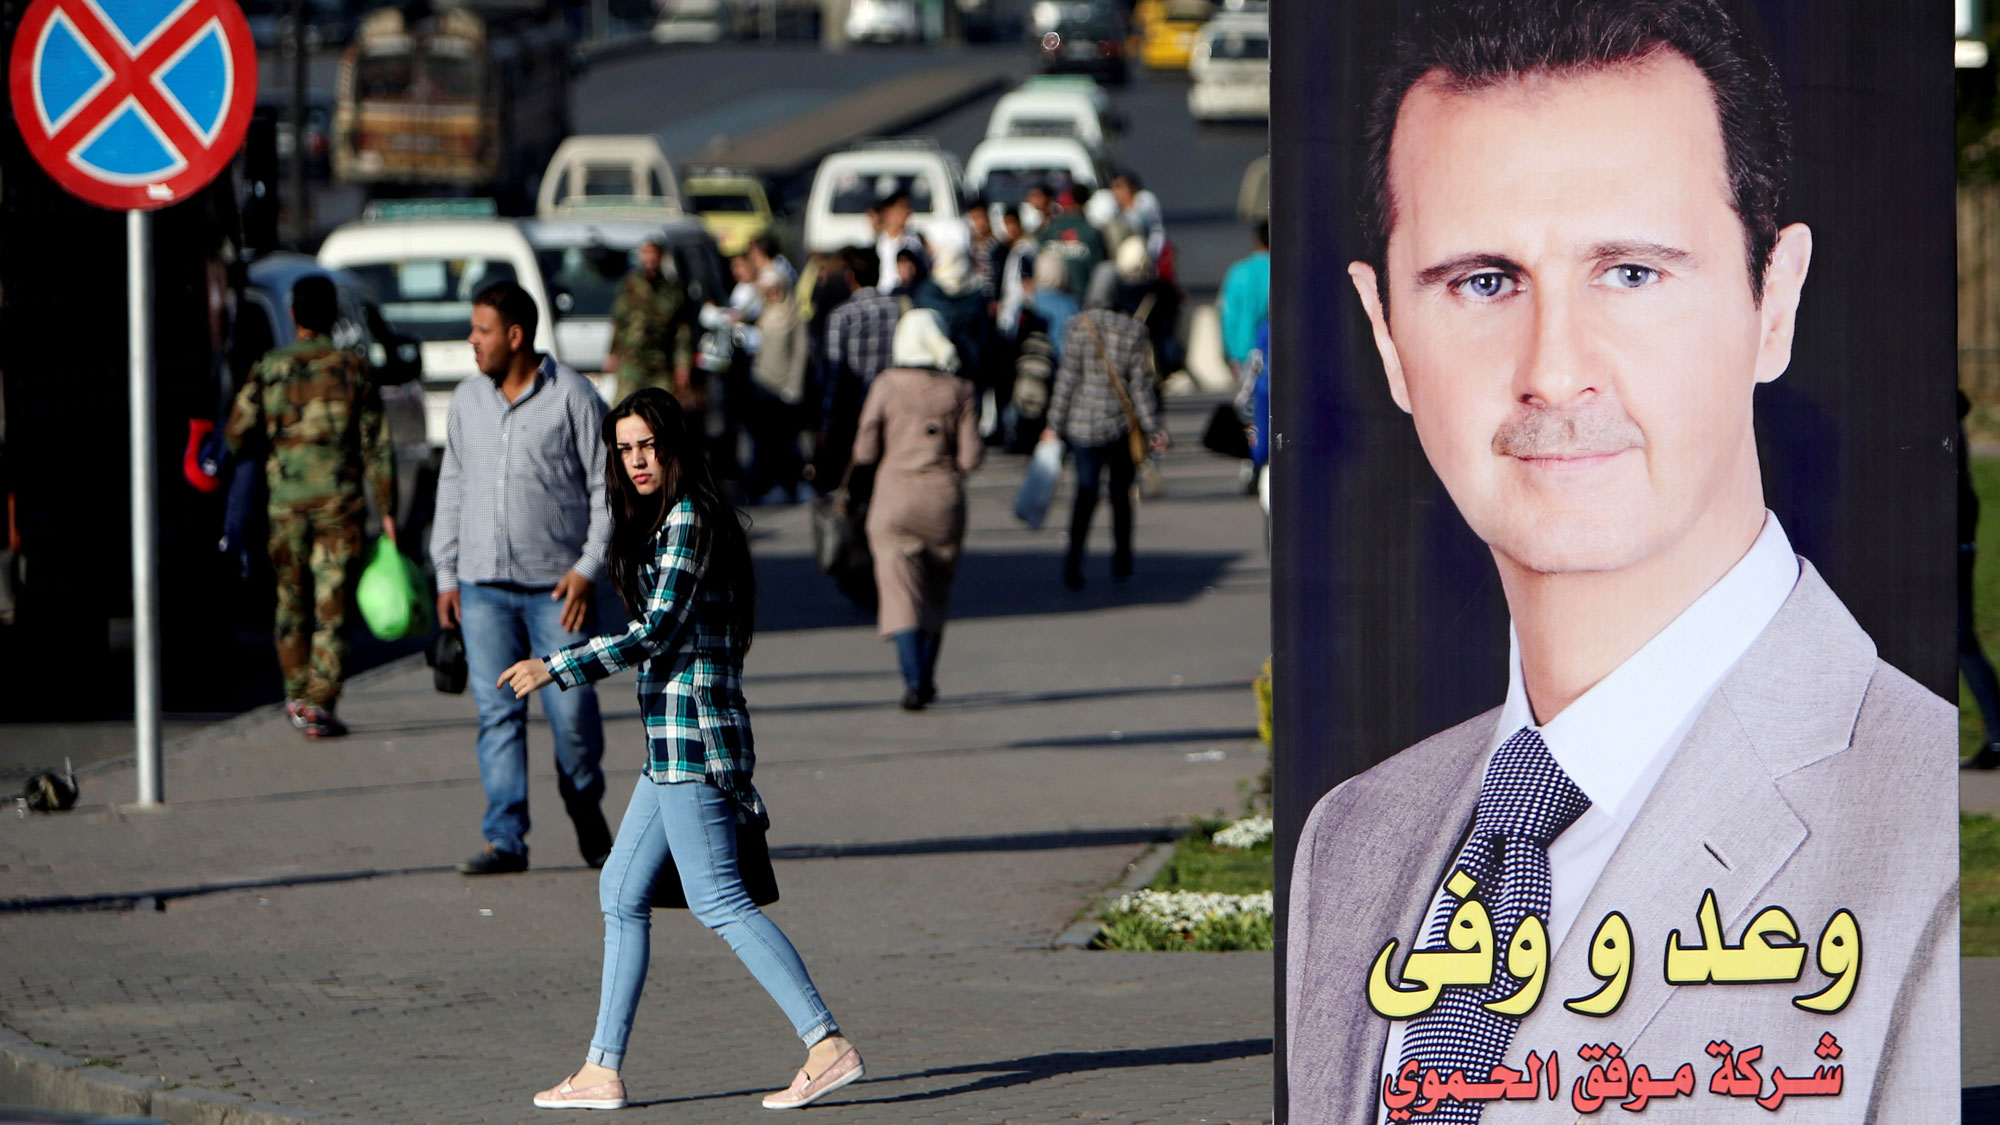 A woman walks wearing jeans and a plaid shirt is shown near a picture of Syrian President Bashar al-Assad in Damascus.